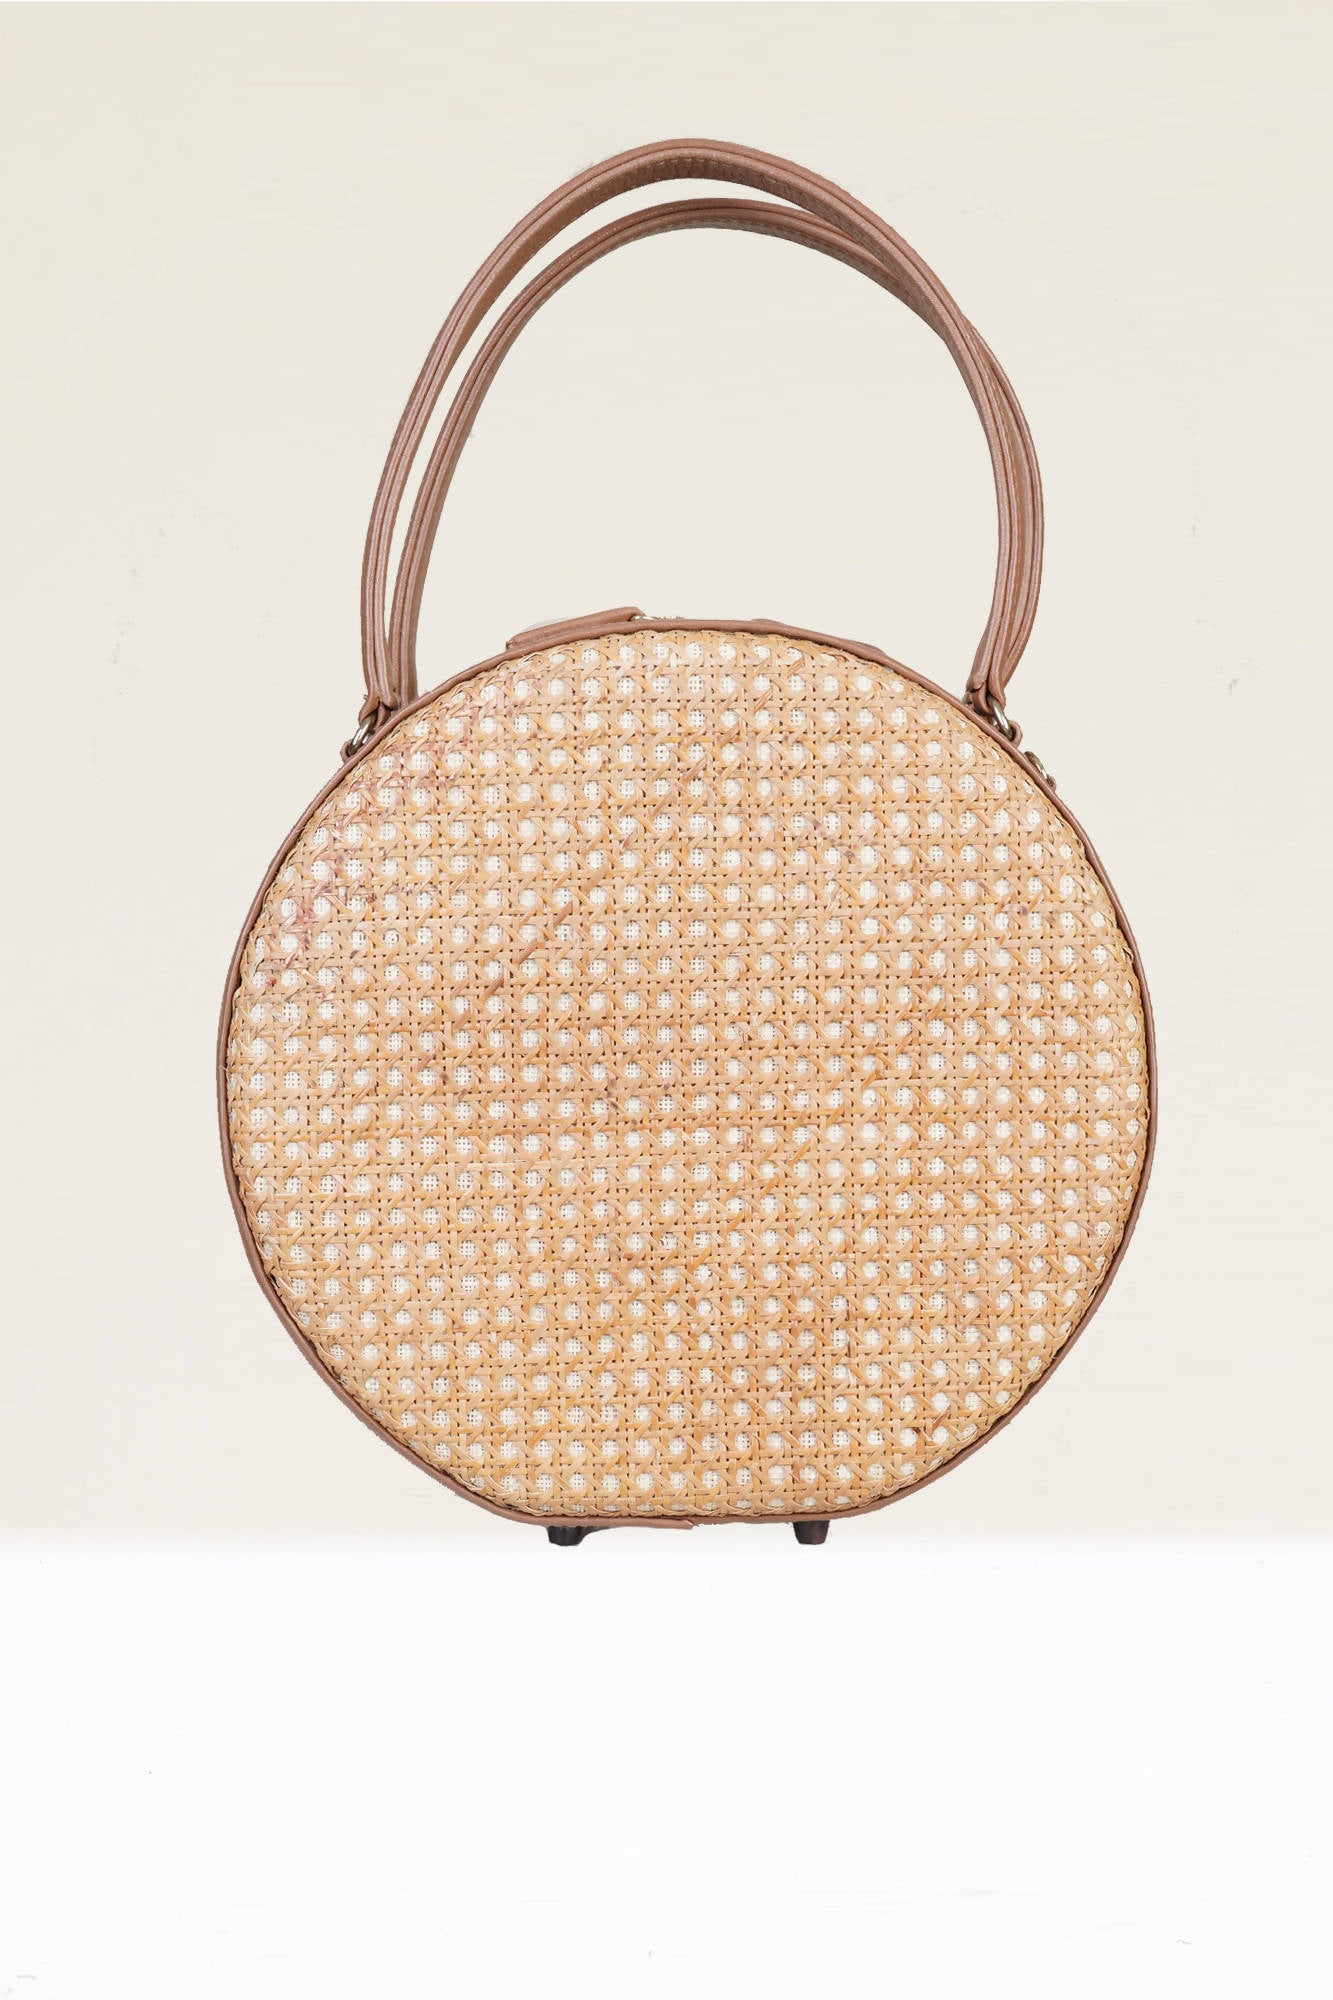 Teresa Round Tote in Nude/Natural